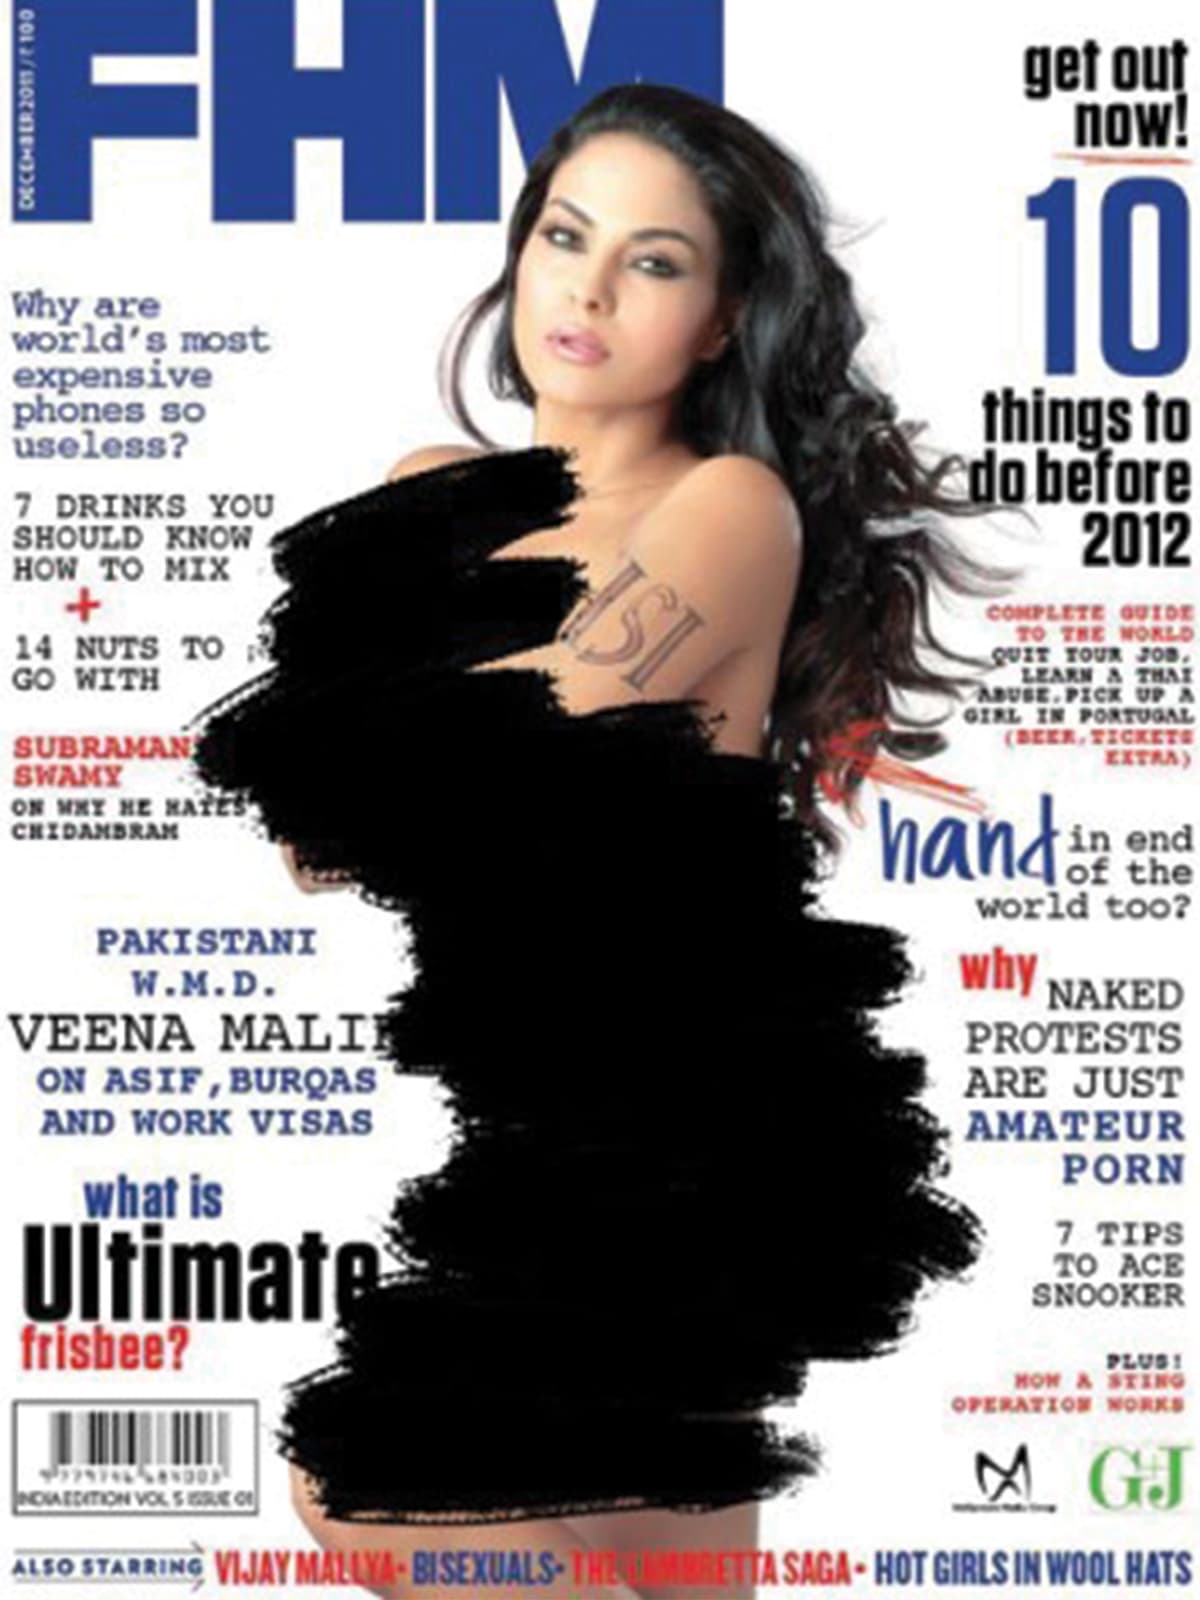 December 2011 cover of FHM  magazine